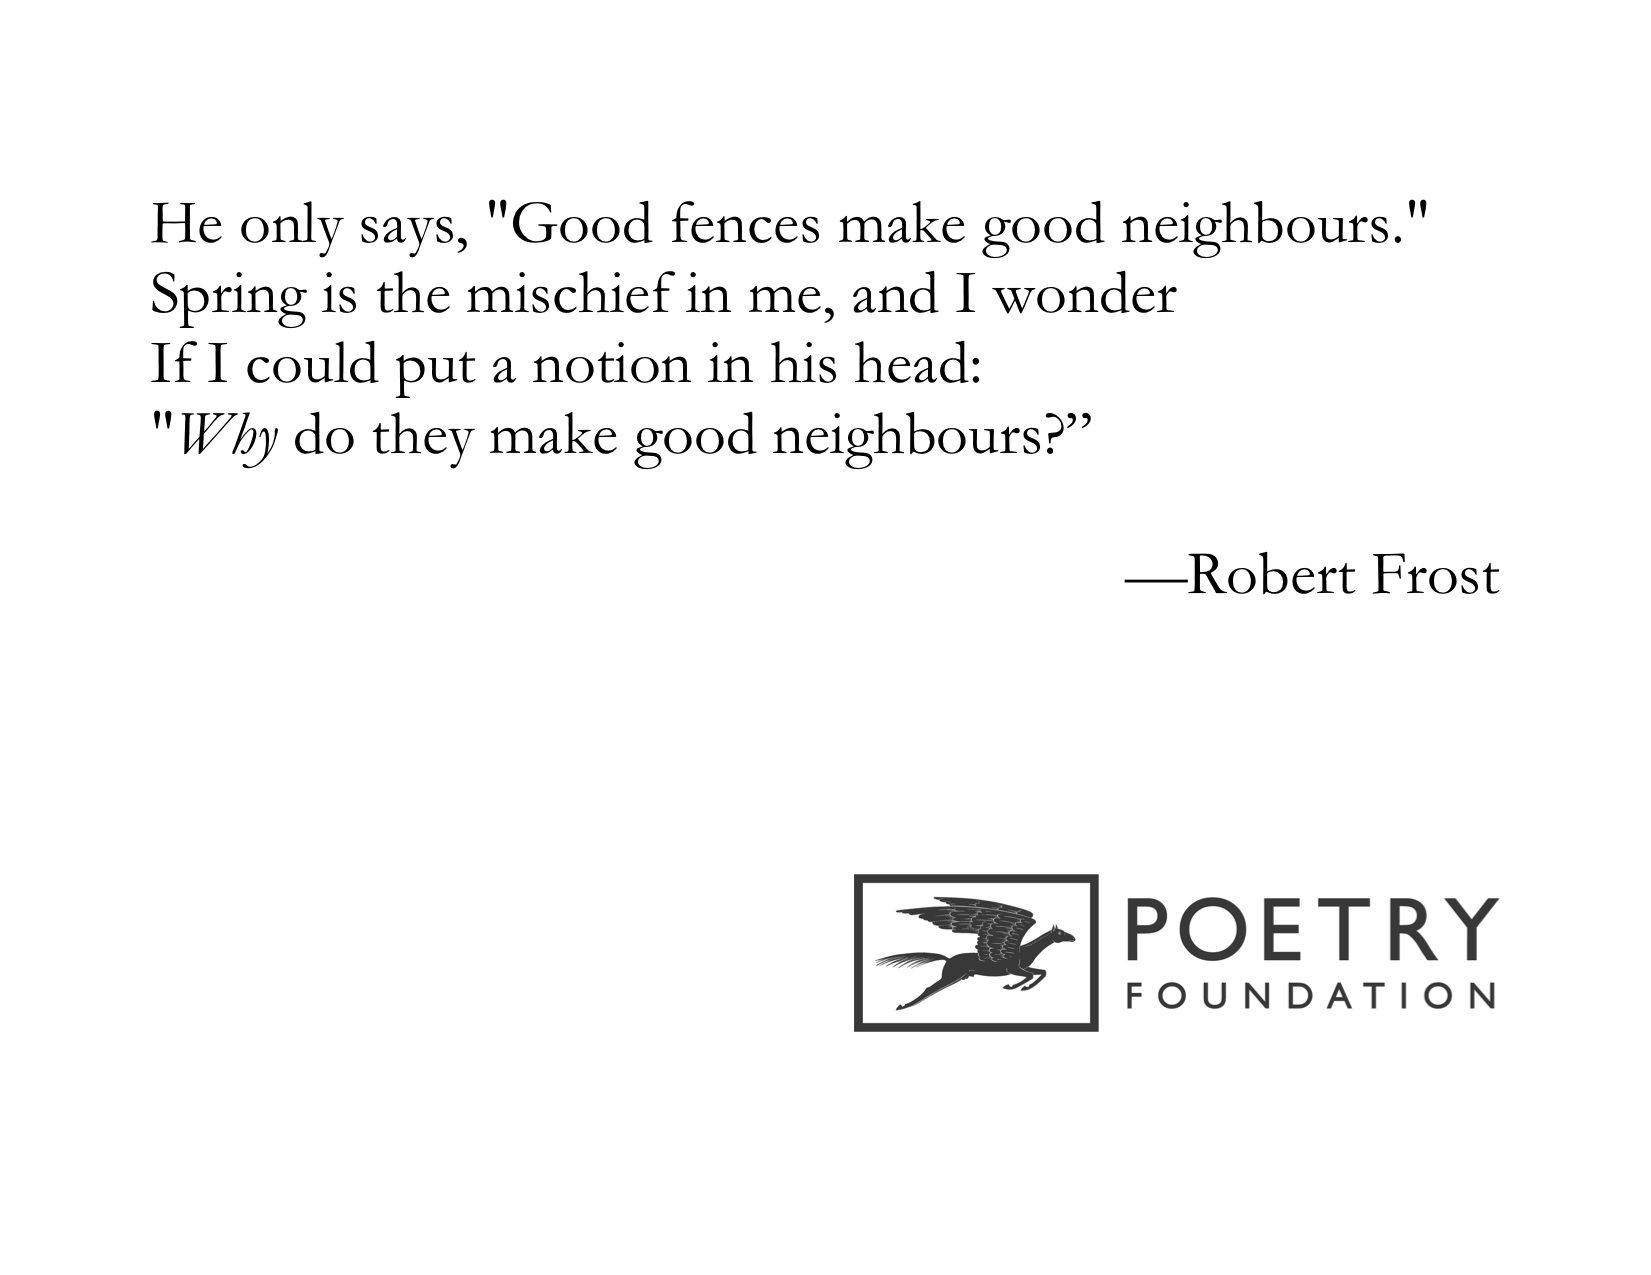 an analysis of the poems poetry mending wall by robert frost filling station and the fish by elizabe An analysis of robert frost's mending wall mending wall, by robert frost portrays the routines of two neighbors who are constantly mending.